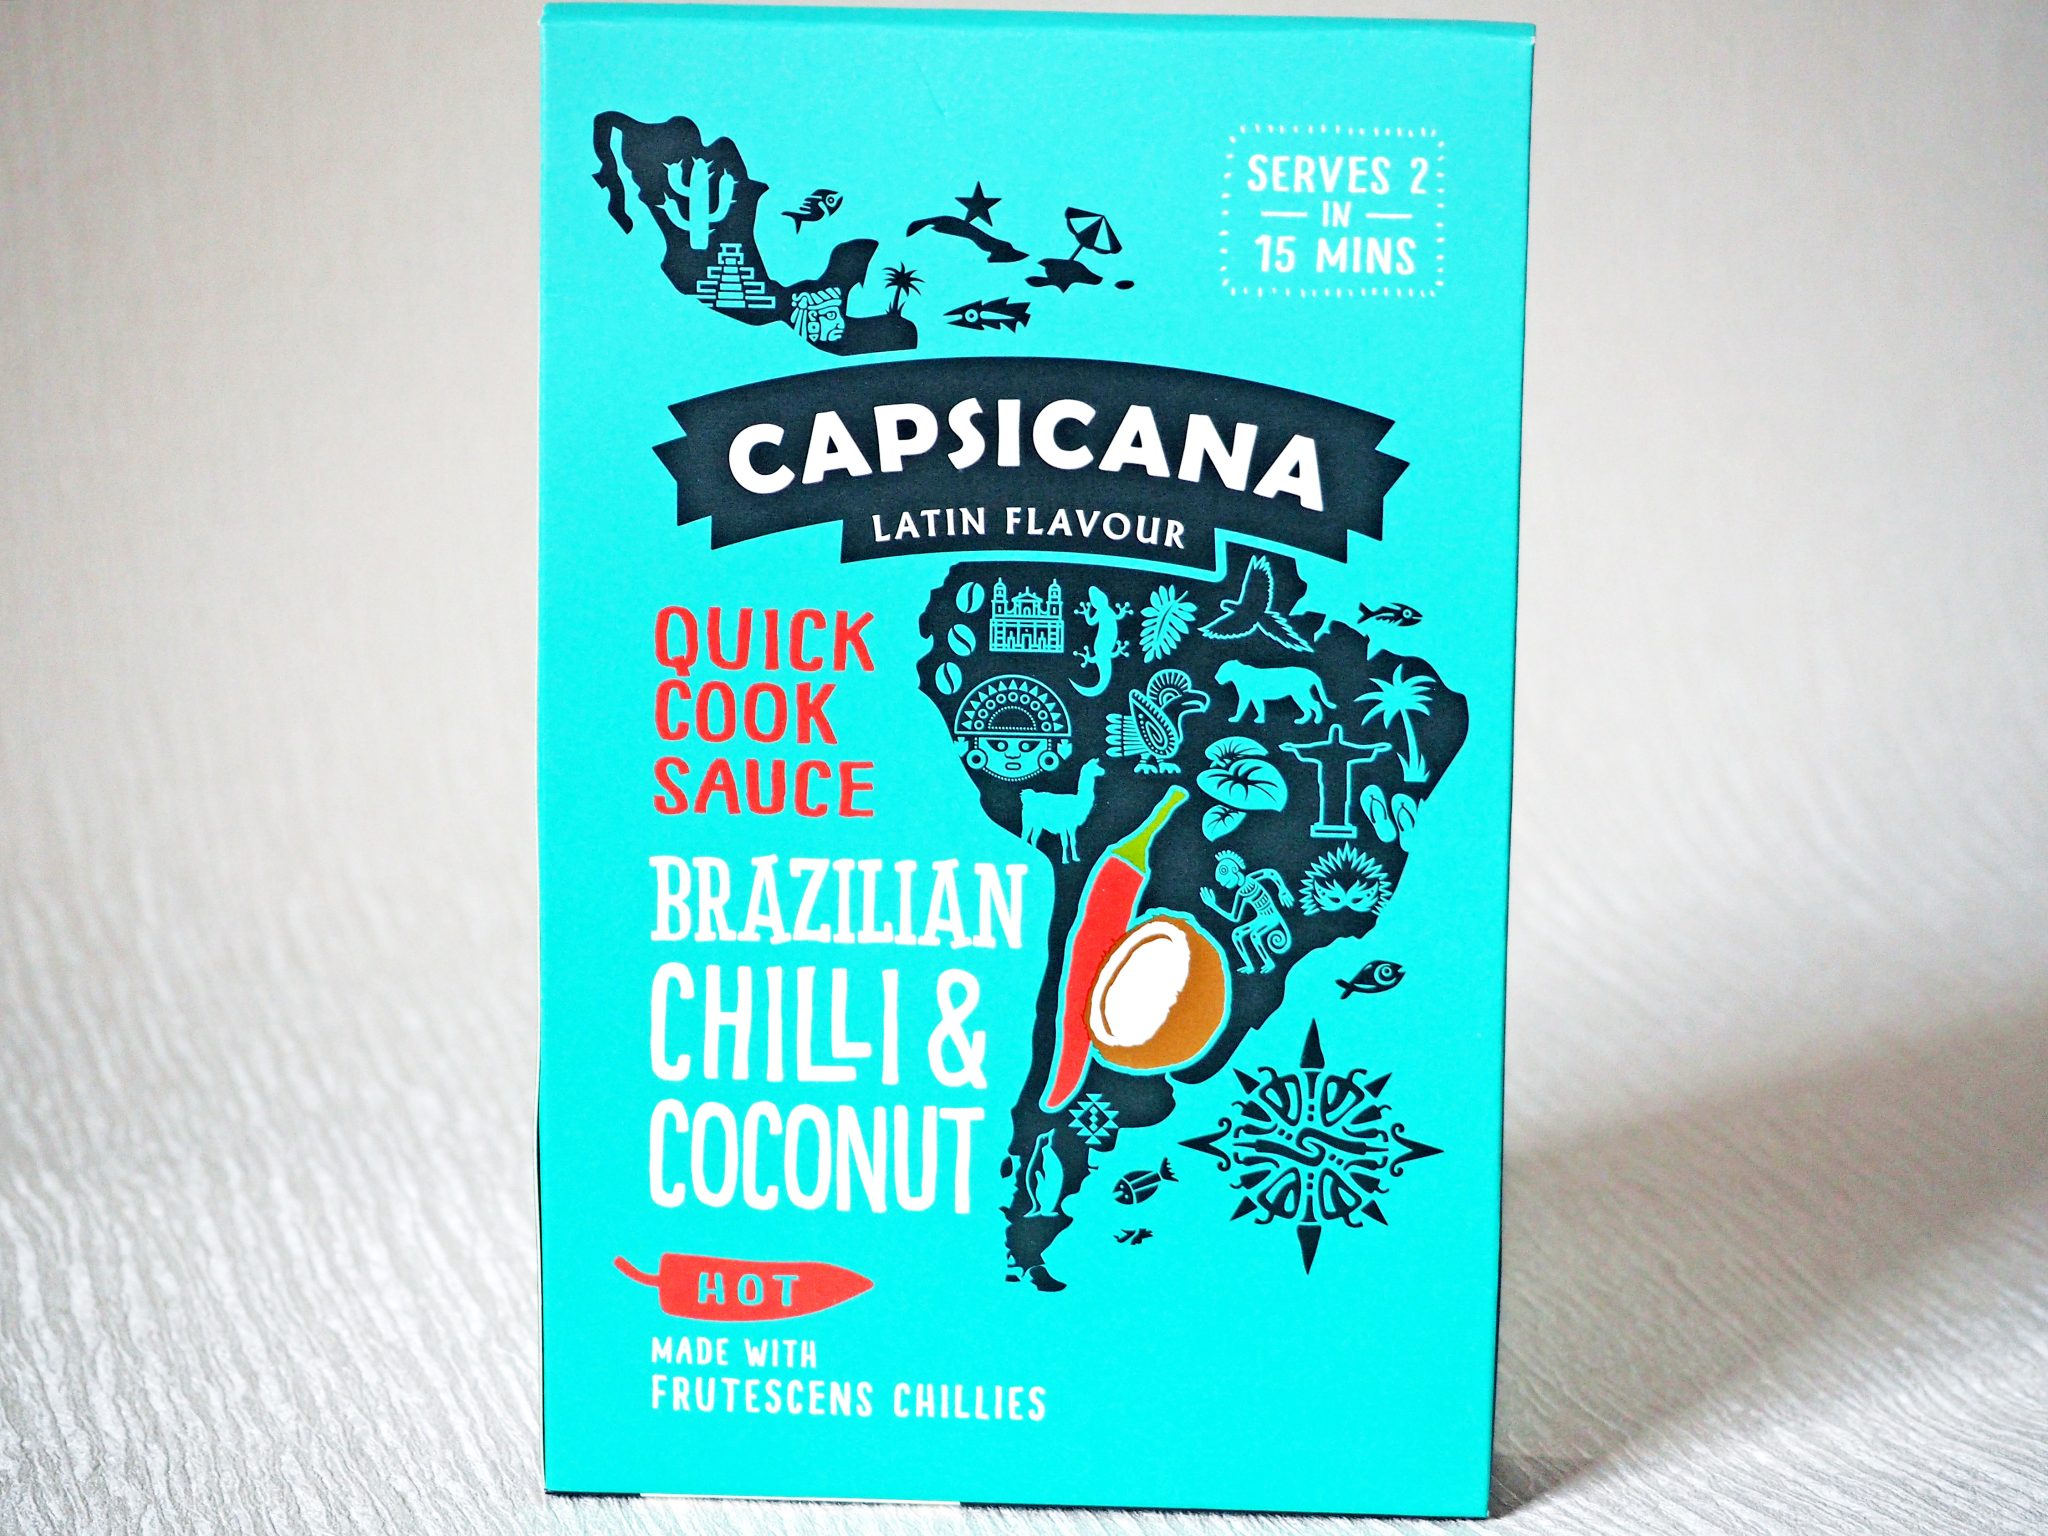 Laura Kate Lucas - Manchester Fashion, Food and Lifestyle Blogger | Capsicana Quick Cook Sauce Review and Recipe